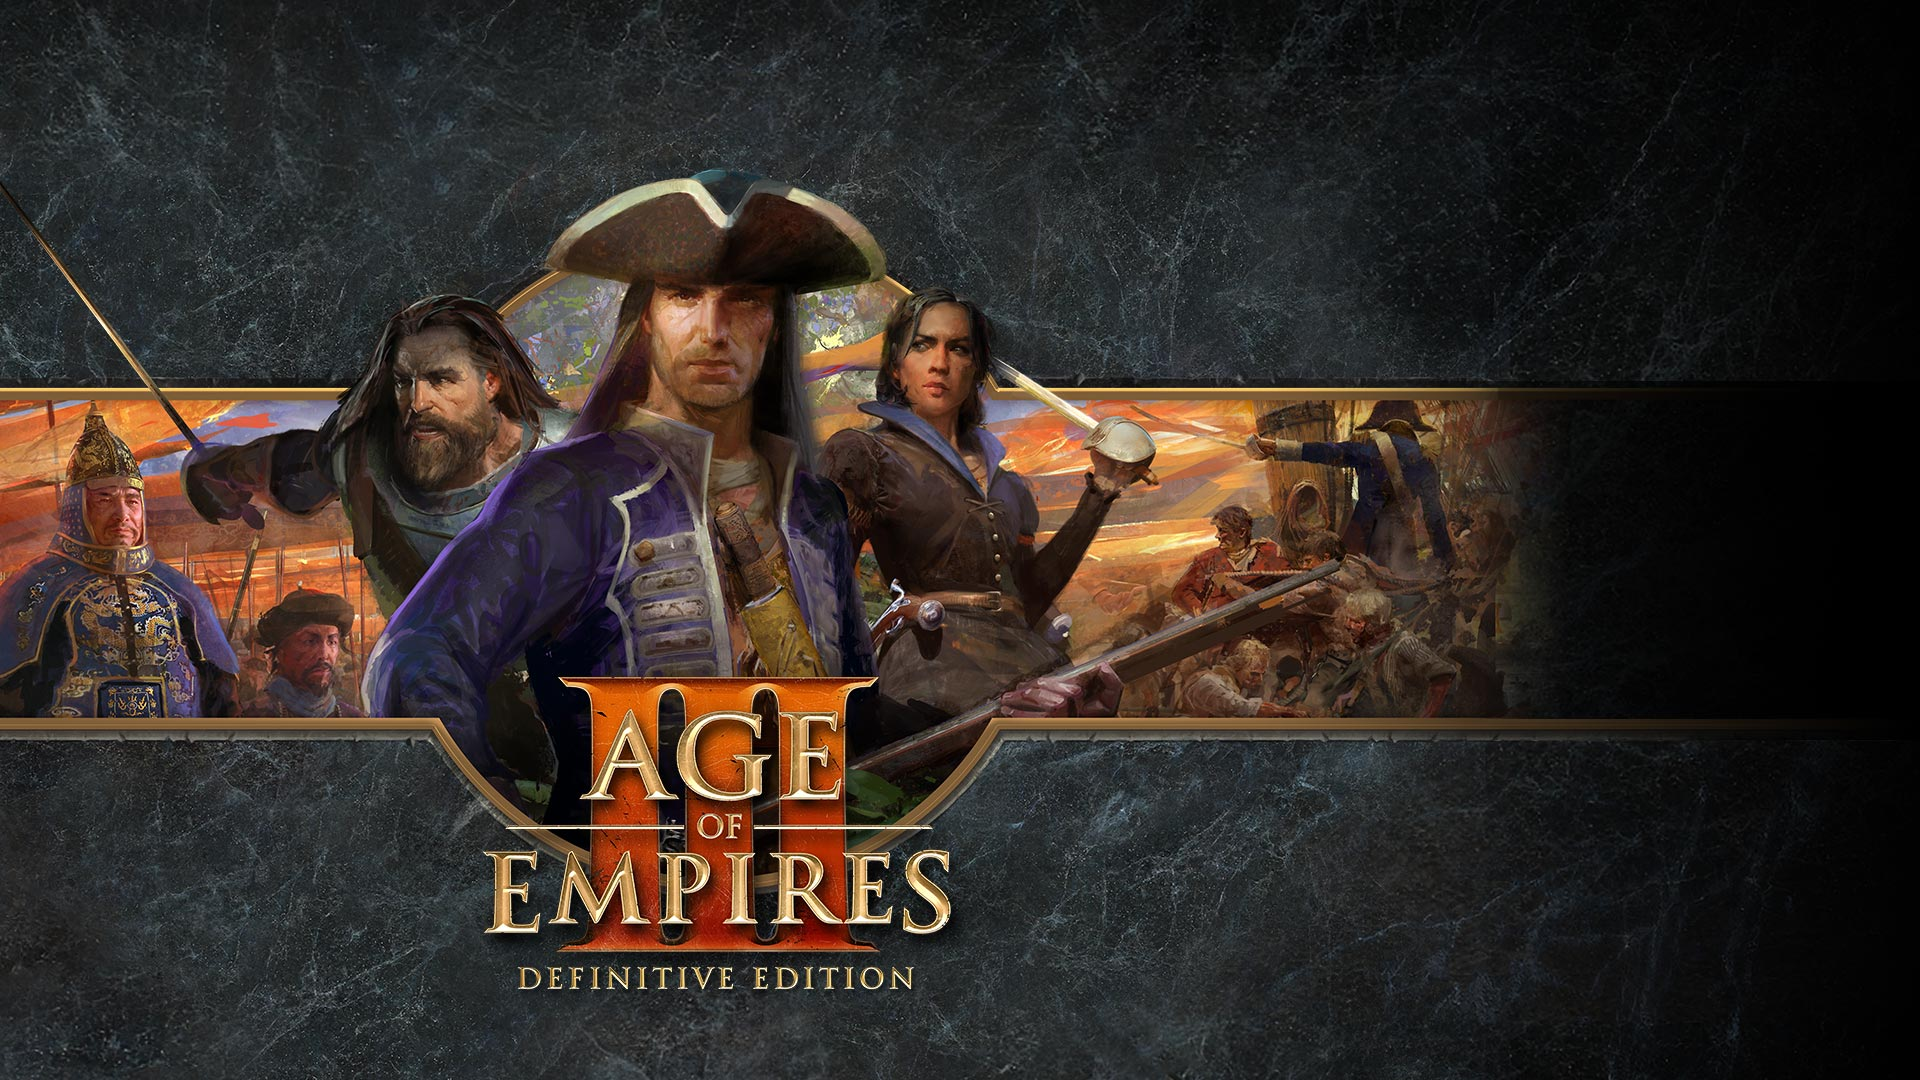 Age of Empires III: Definitive Edition, personajes posando